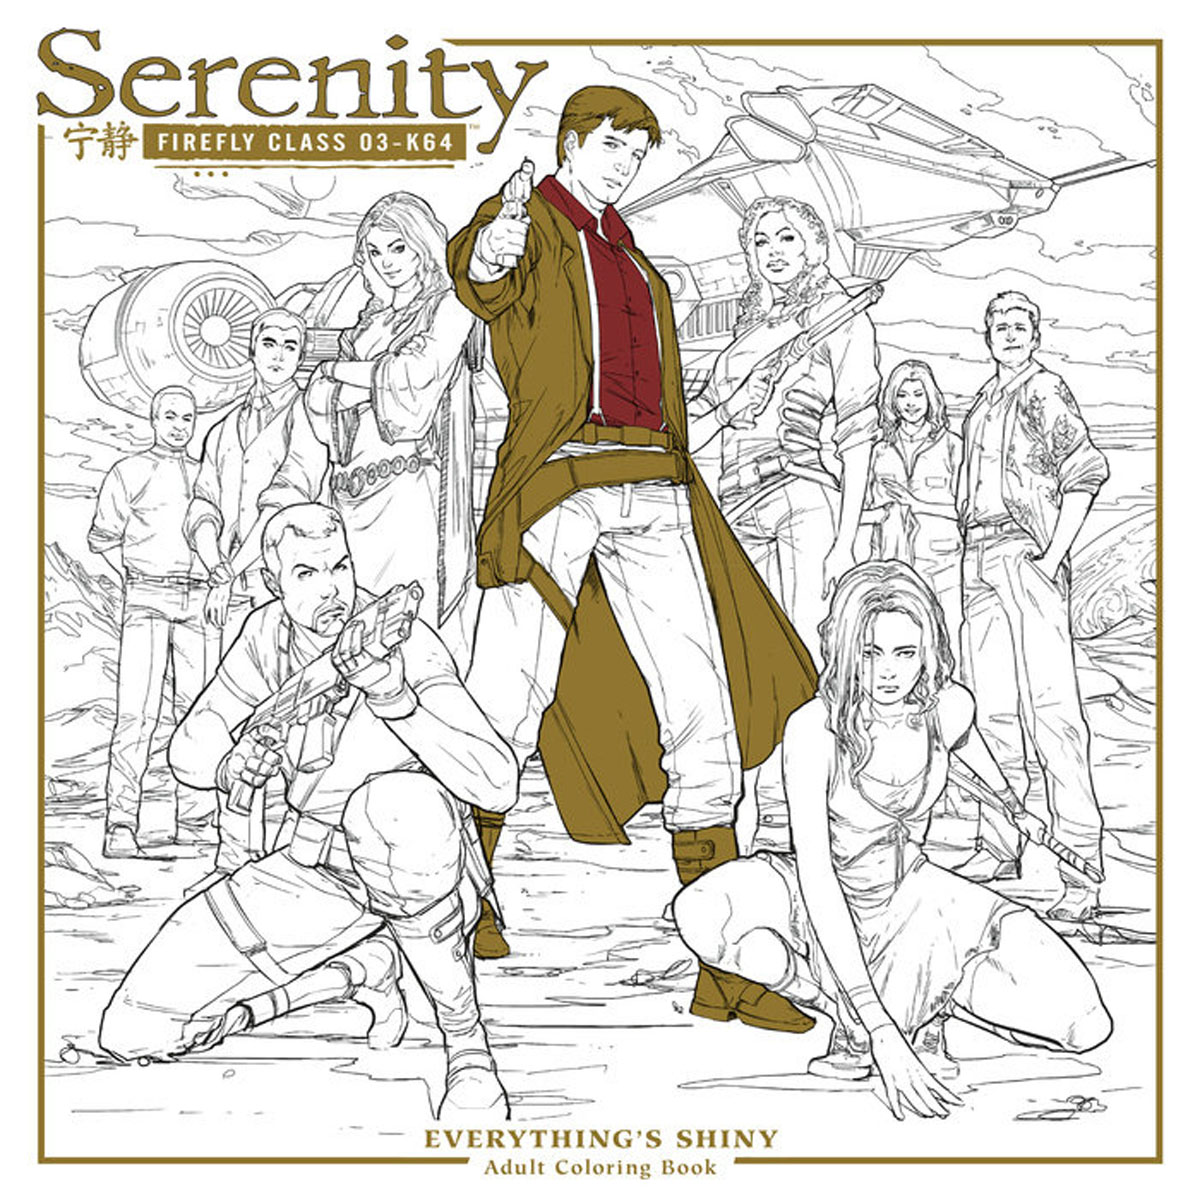 Serenity: Everything's Shiny Adult Coloring Book grace and the preacher